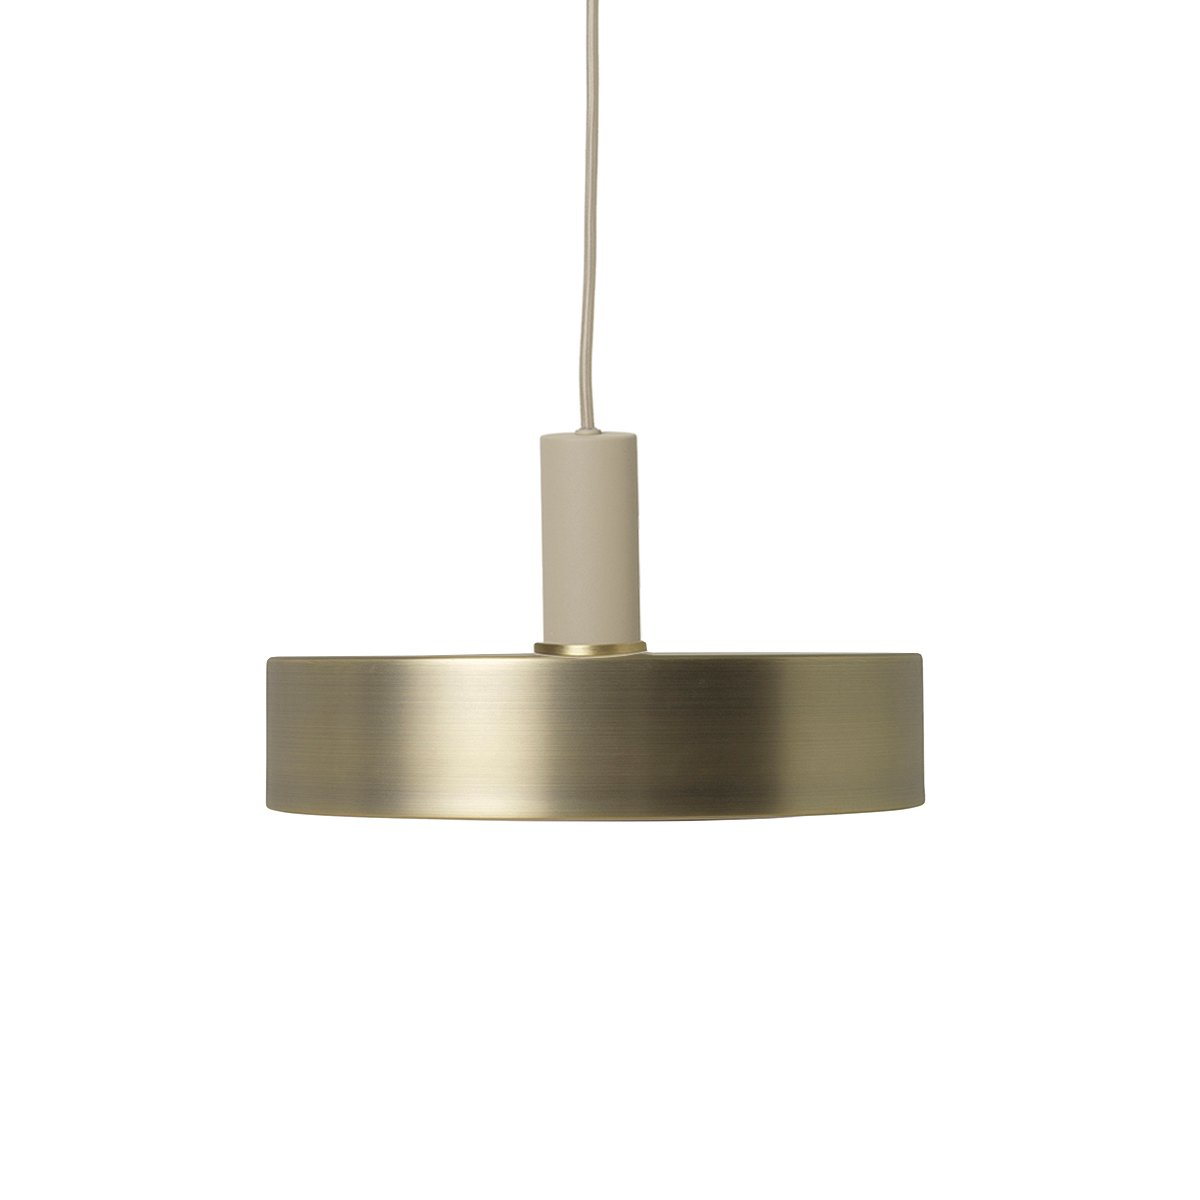 Ferm Living Collect Record Messing Low Hanglamp - Cashmere